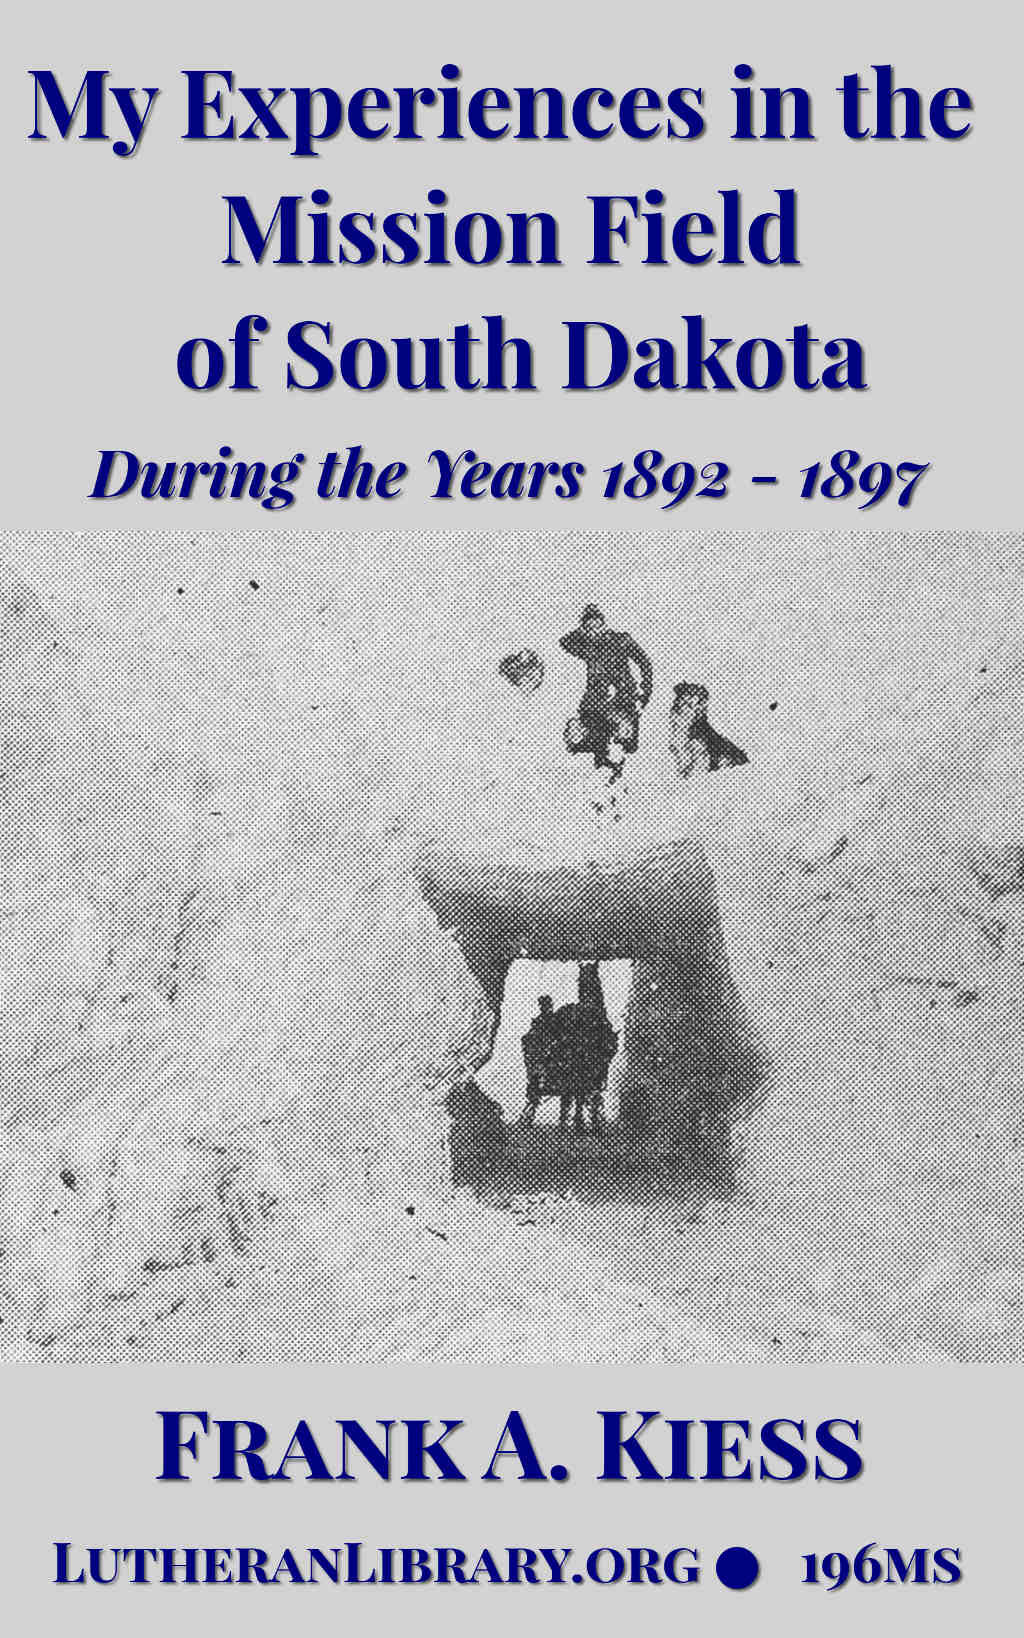 My experiences in the mission field of South Dakota during the years 1892-1897 by Frank Albert Kiess, (1867-1942)